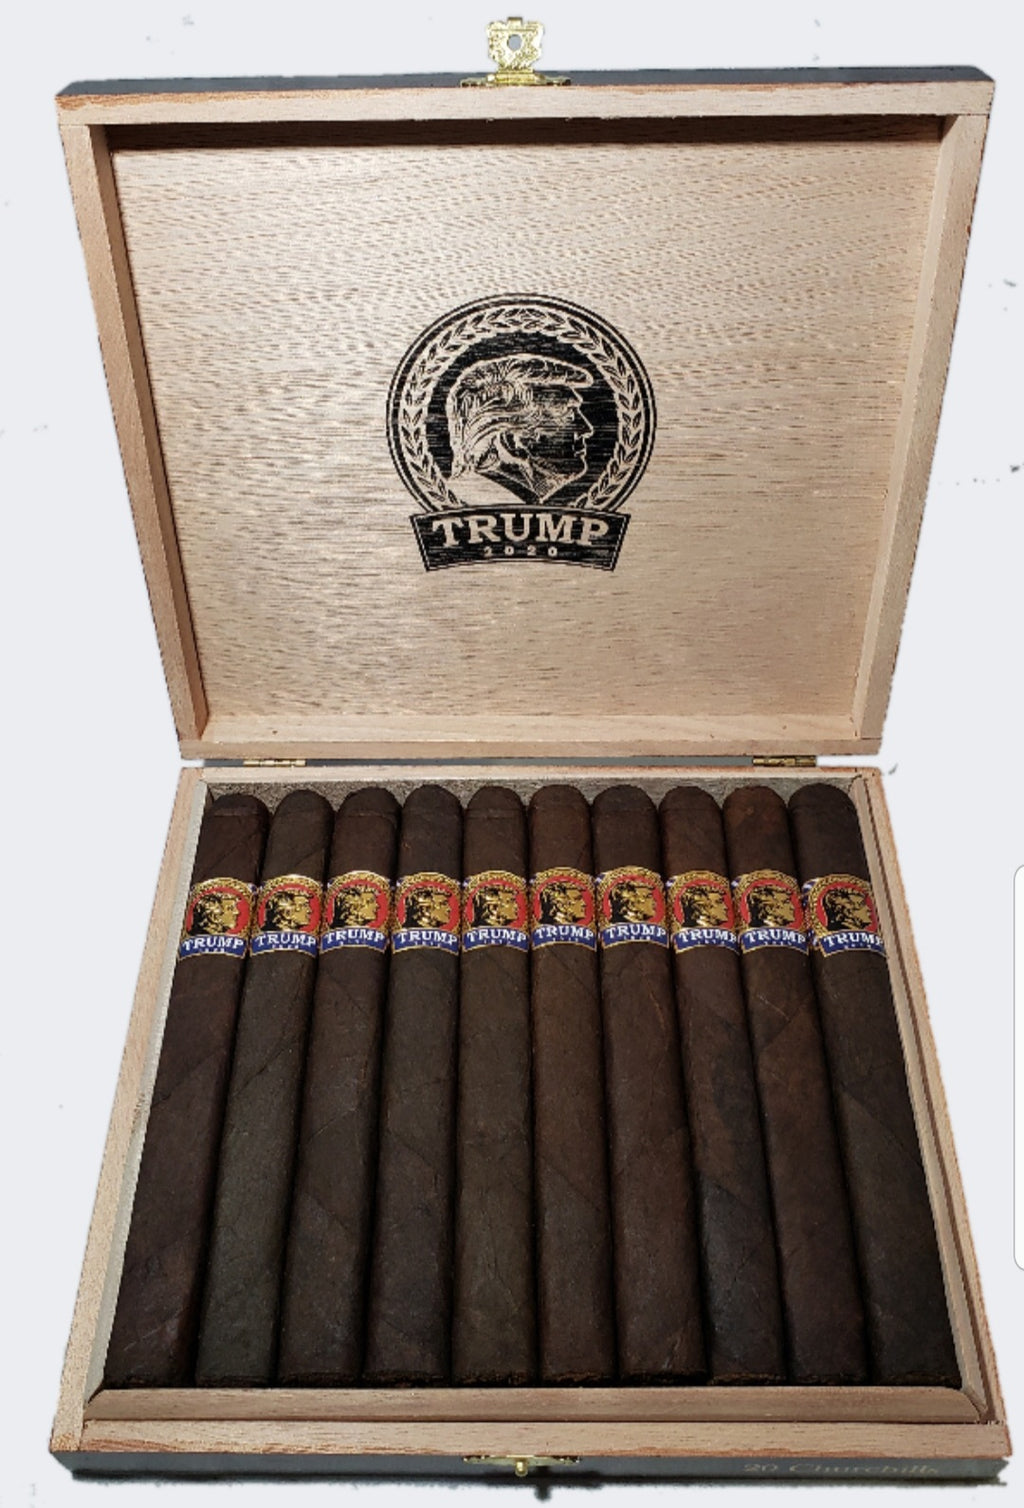 Trump 2020 Presidential Cigars  Includes 20 Cigars